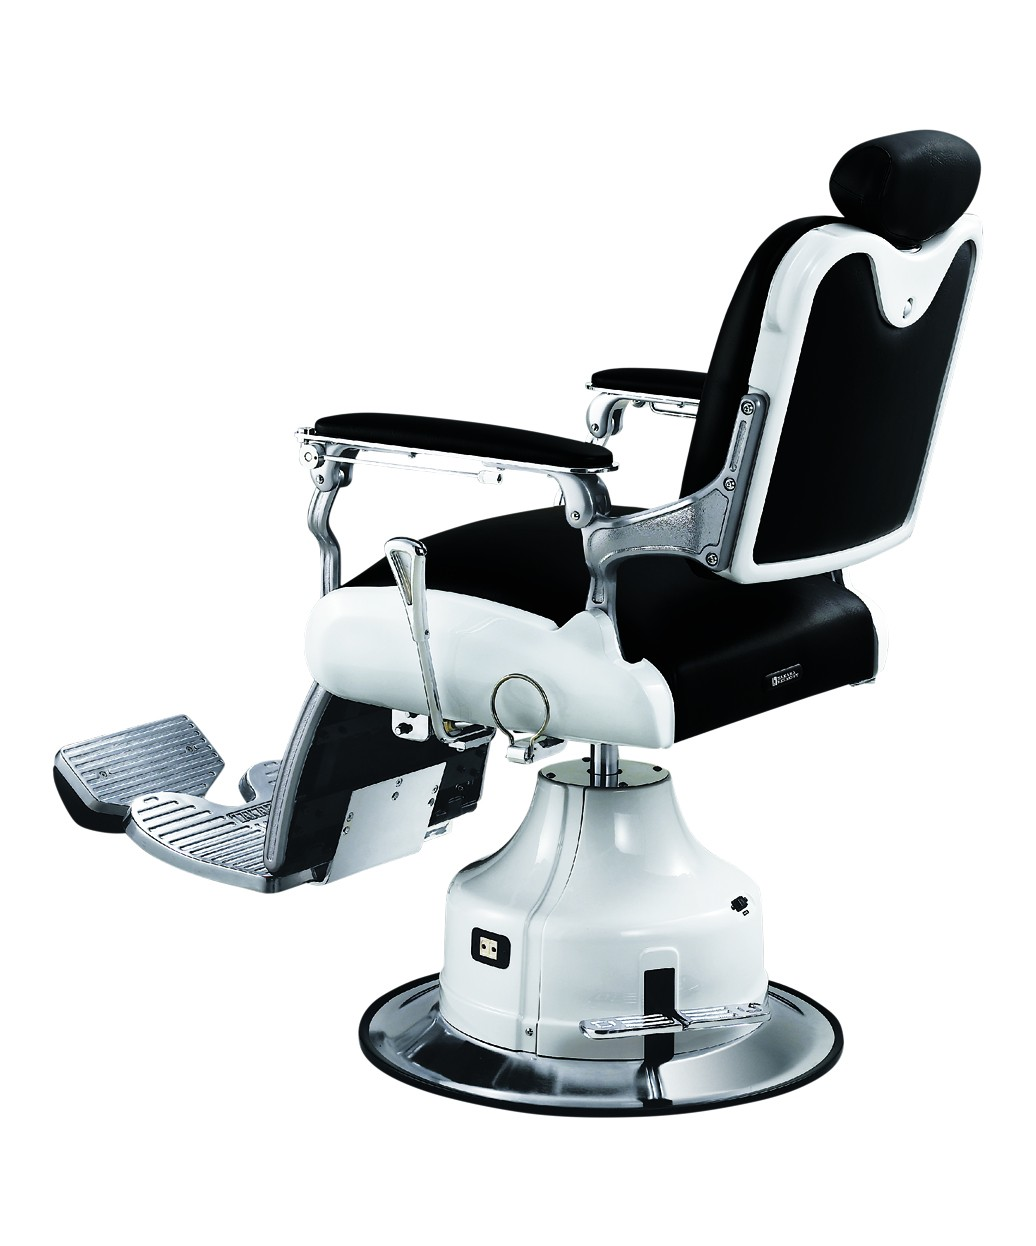 koken barber chair for sale wheelchair escalator takara belmont legacy red and black chairs